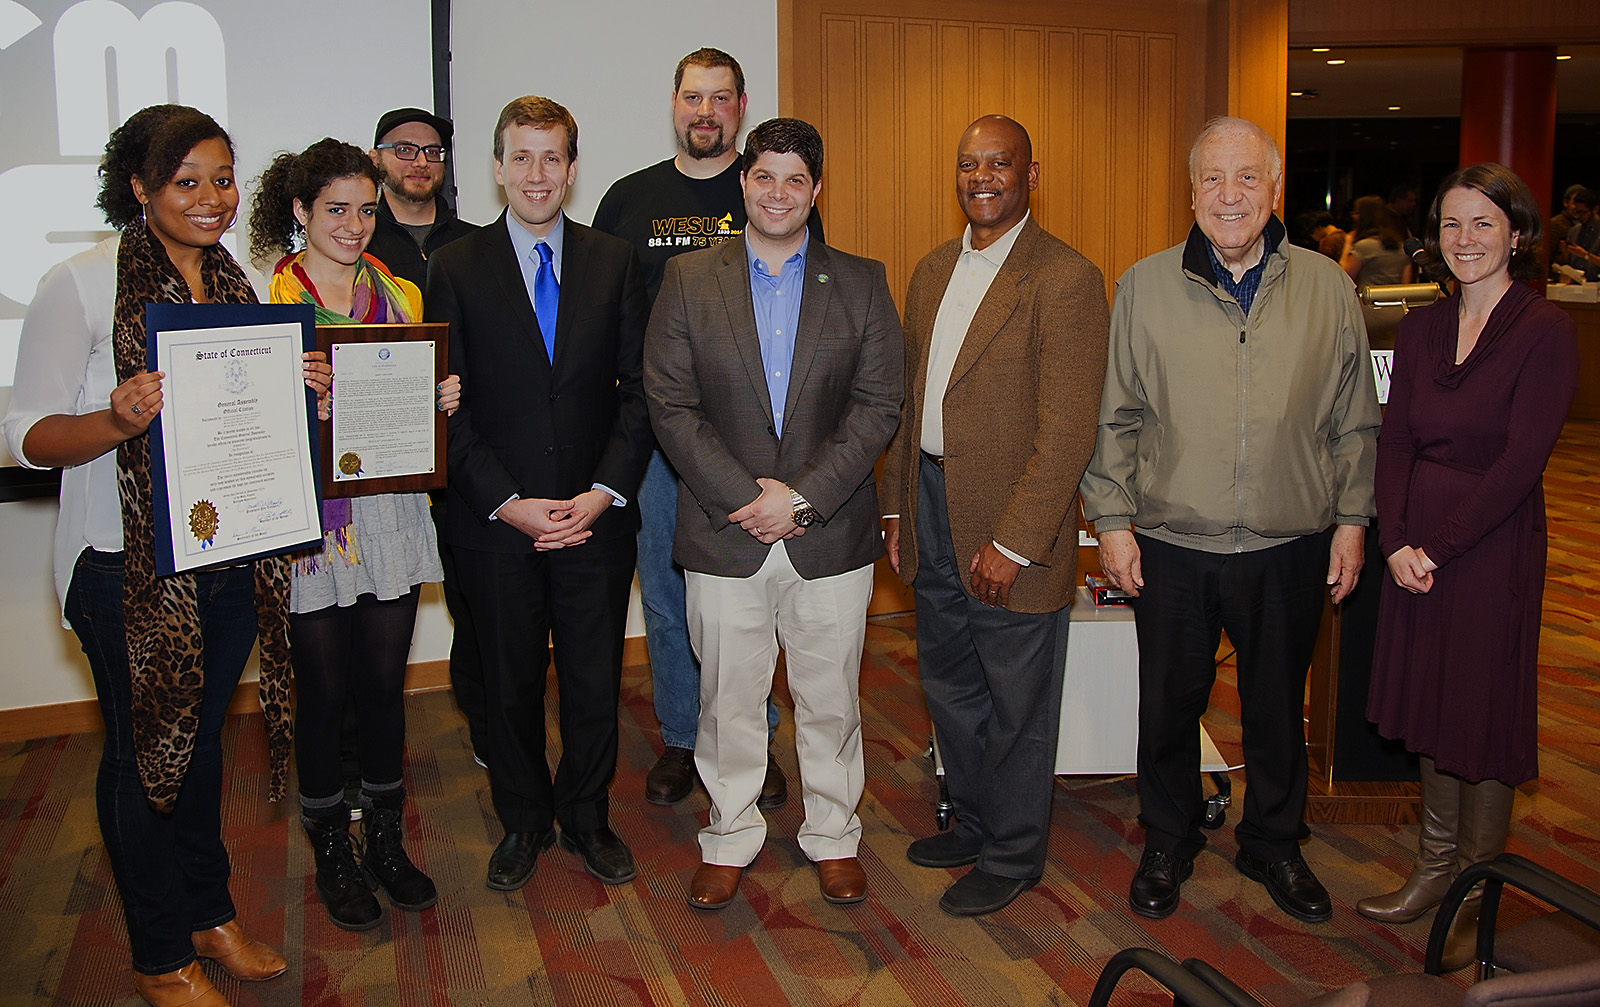 WESU honored by City and State elected officials